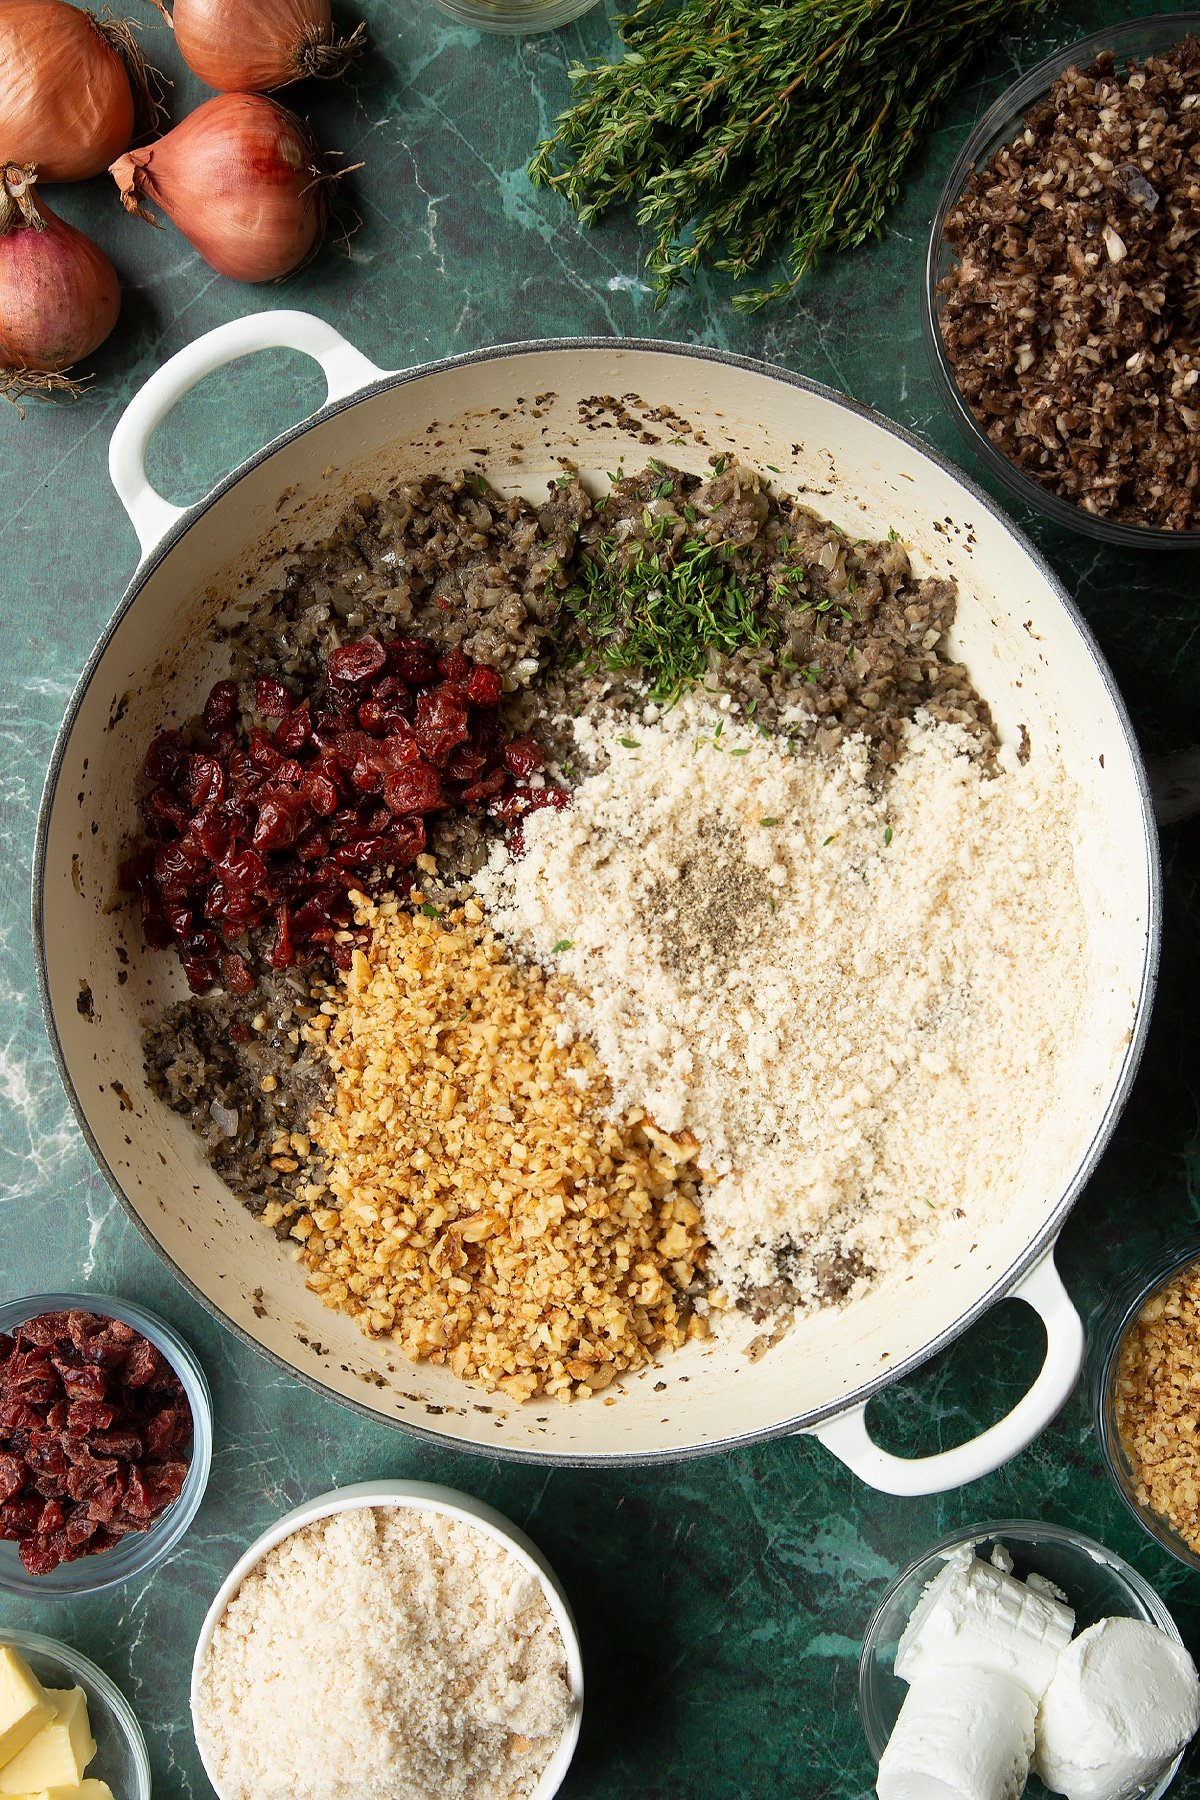 Overhead shot of cranberries, cooked mushrooms, walnuts, thyme, and breadcrumbs in a large frying pan